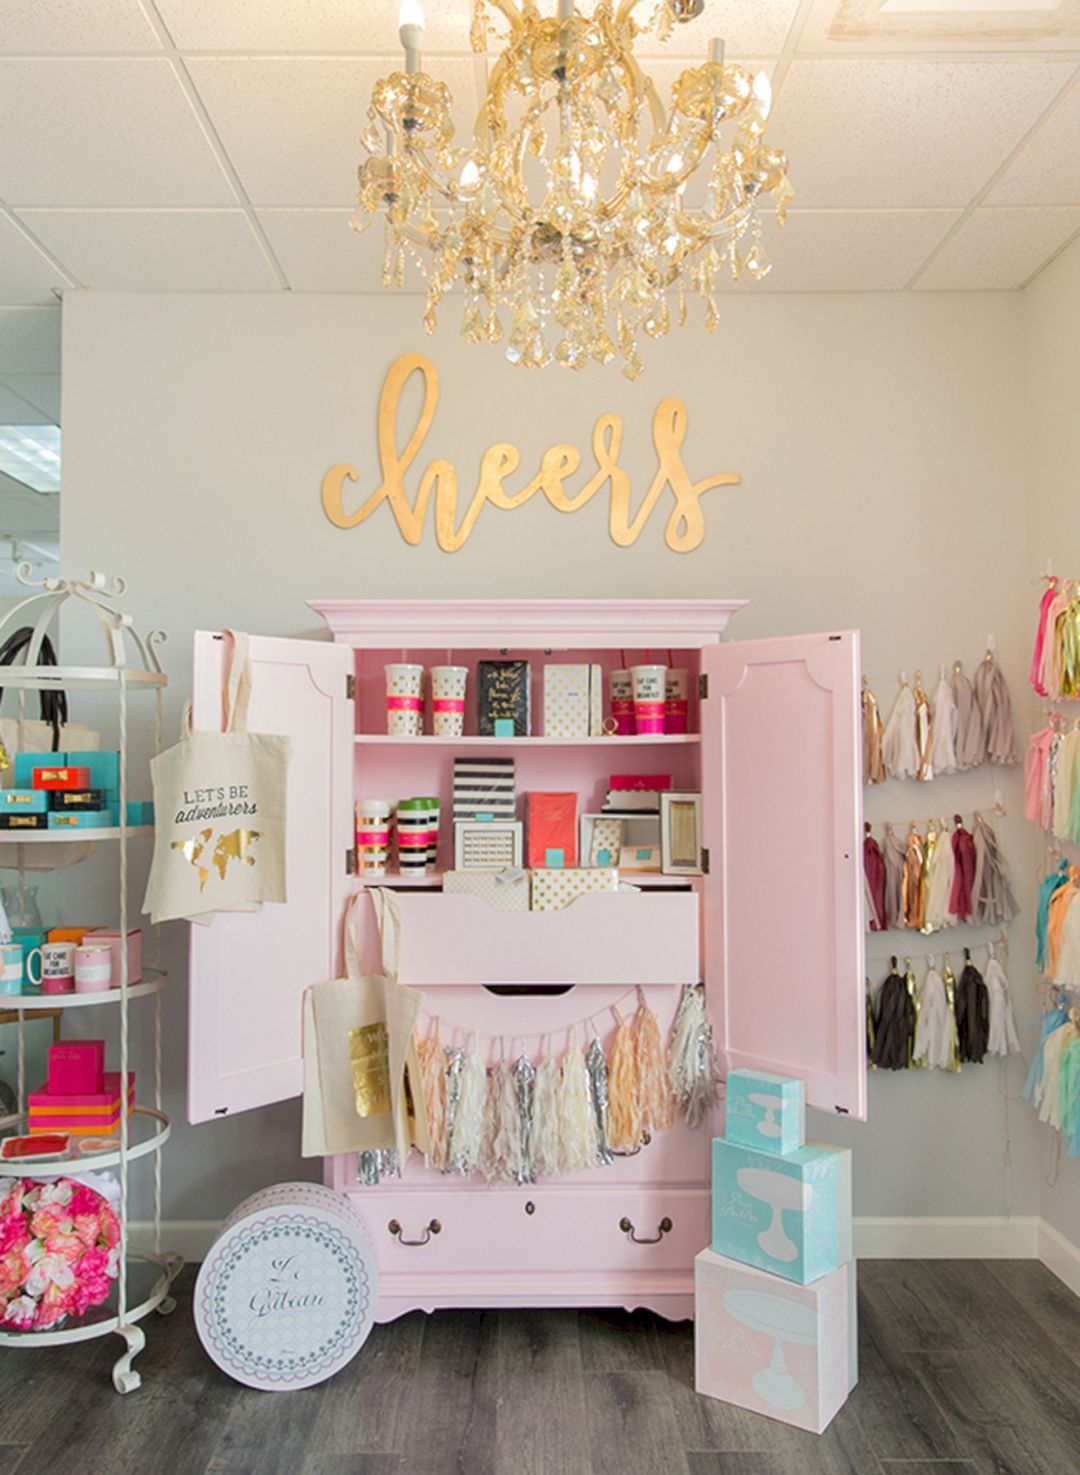 Design der vorderseite des hauses best  clothing boutique interior design ideas you need to try